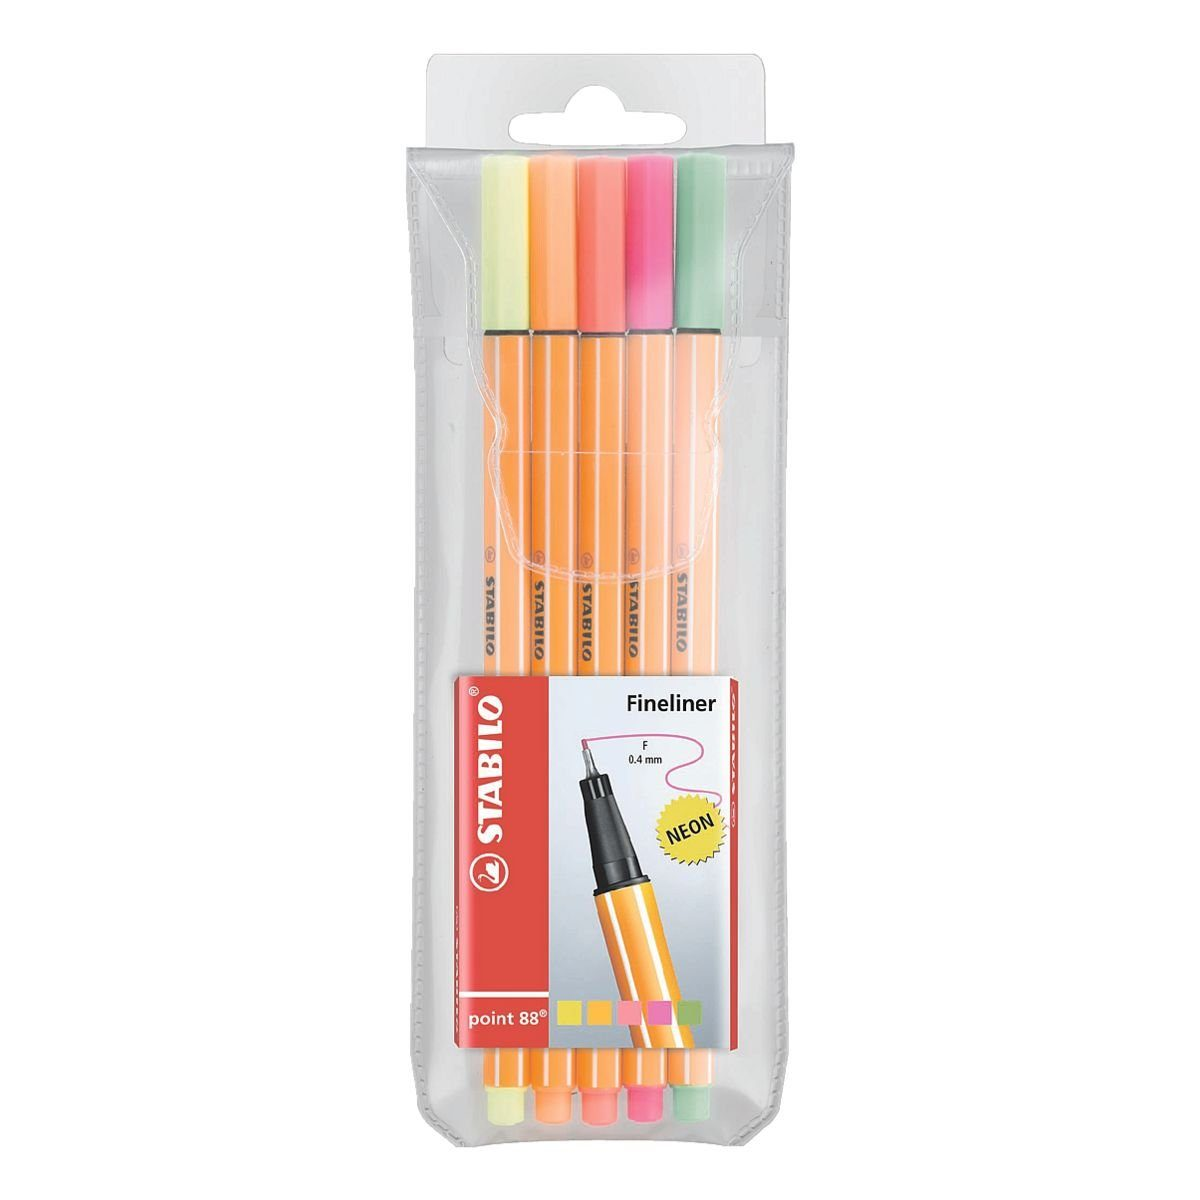 Stabilo 5er-Pack Fineliner »Point 88 neon«